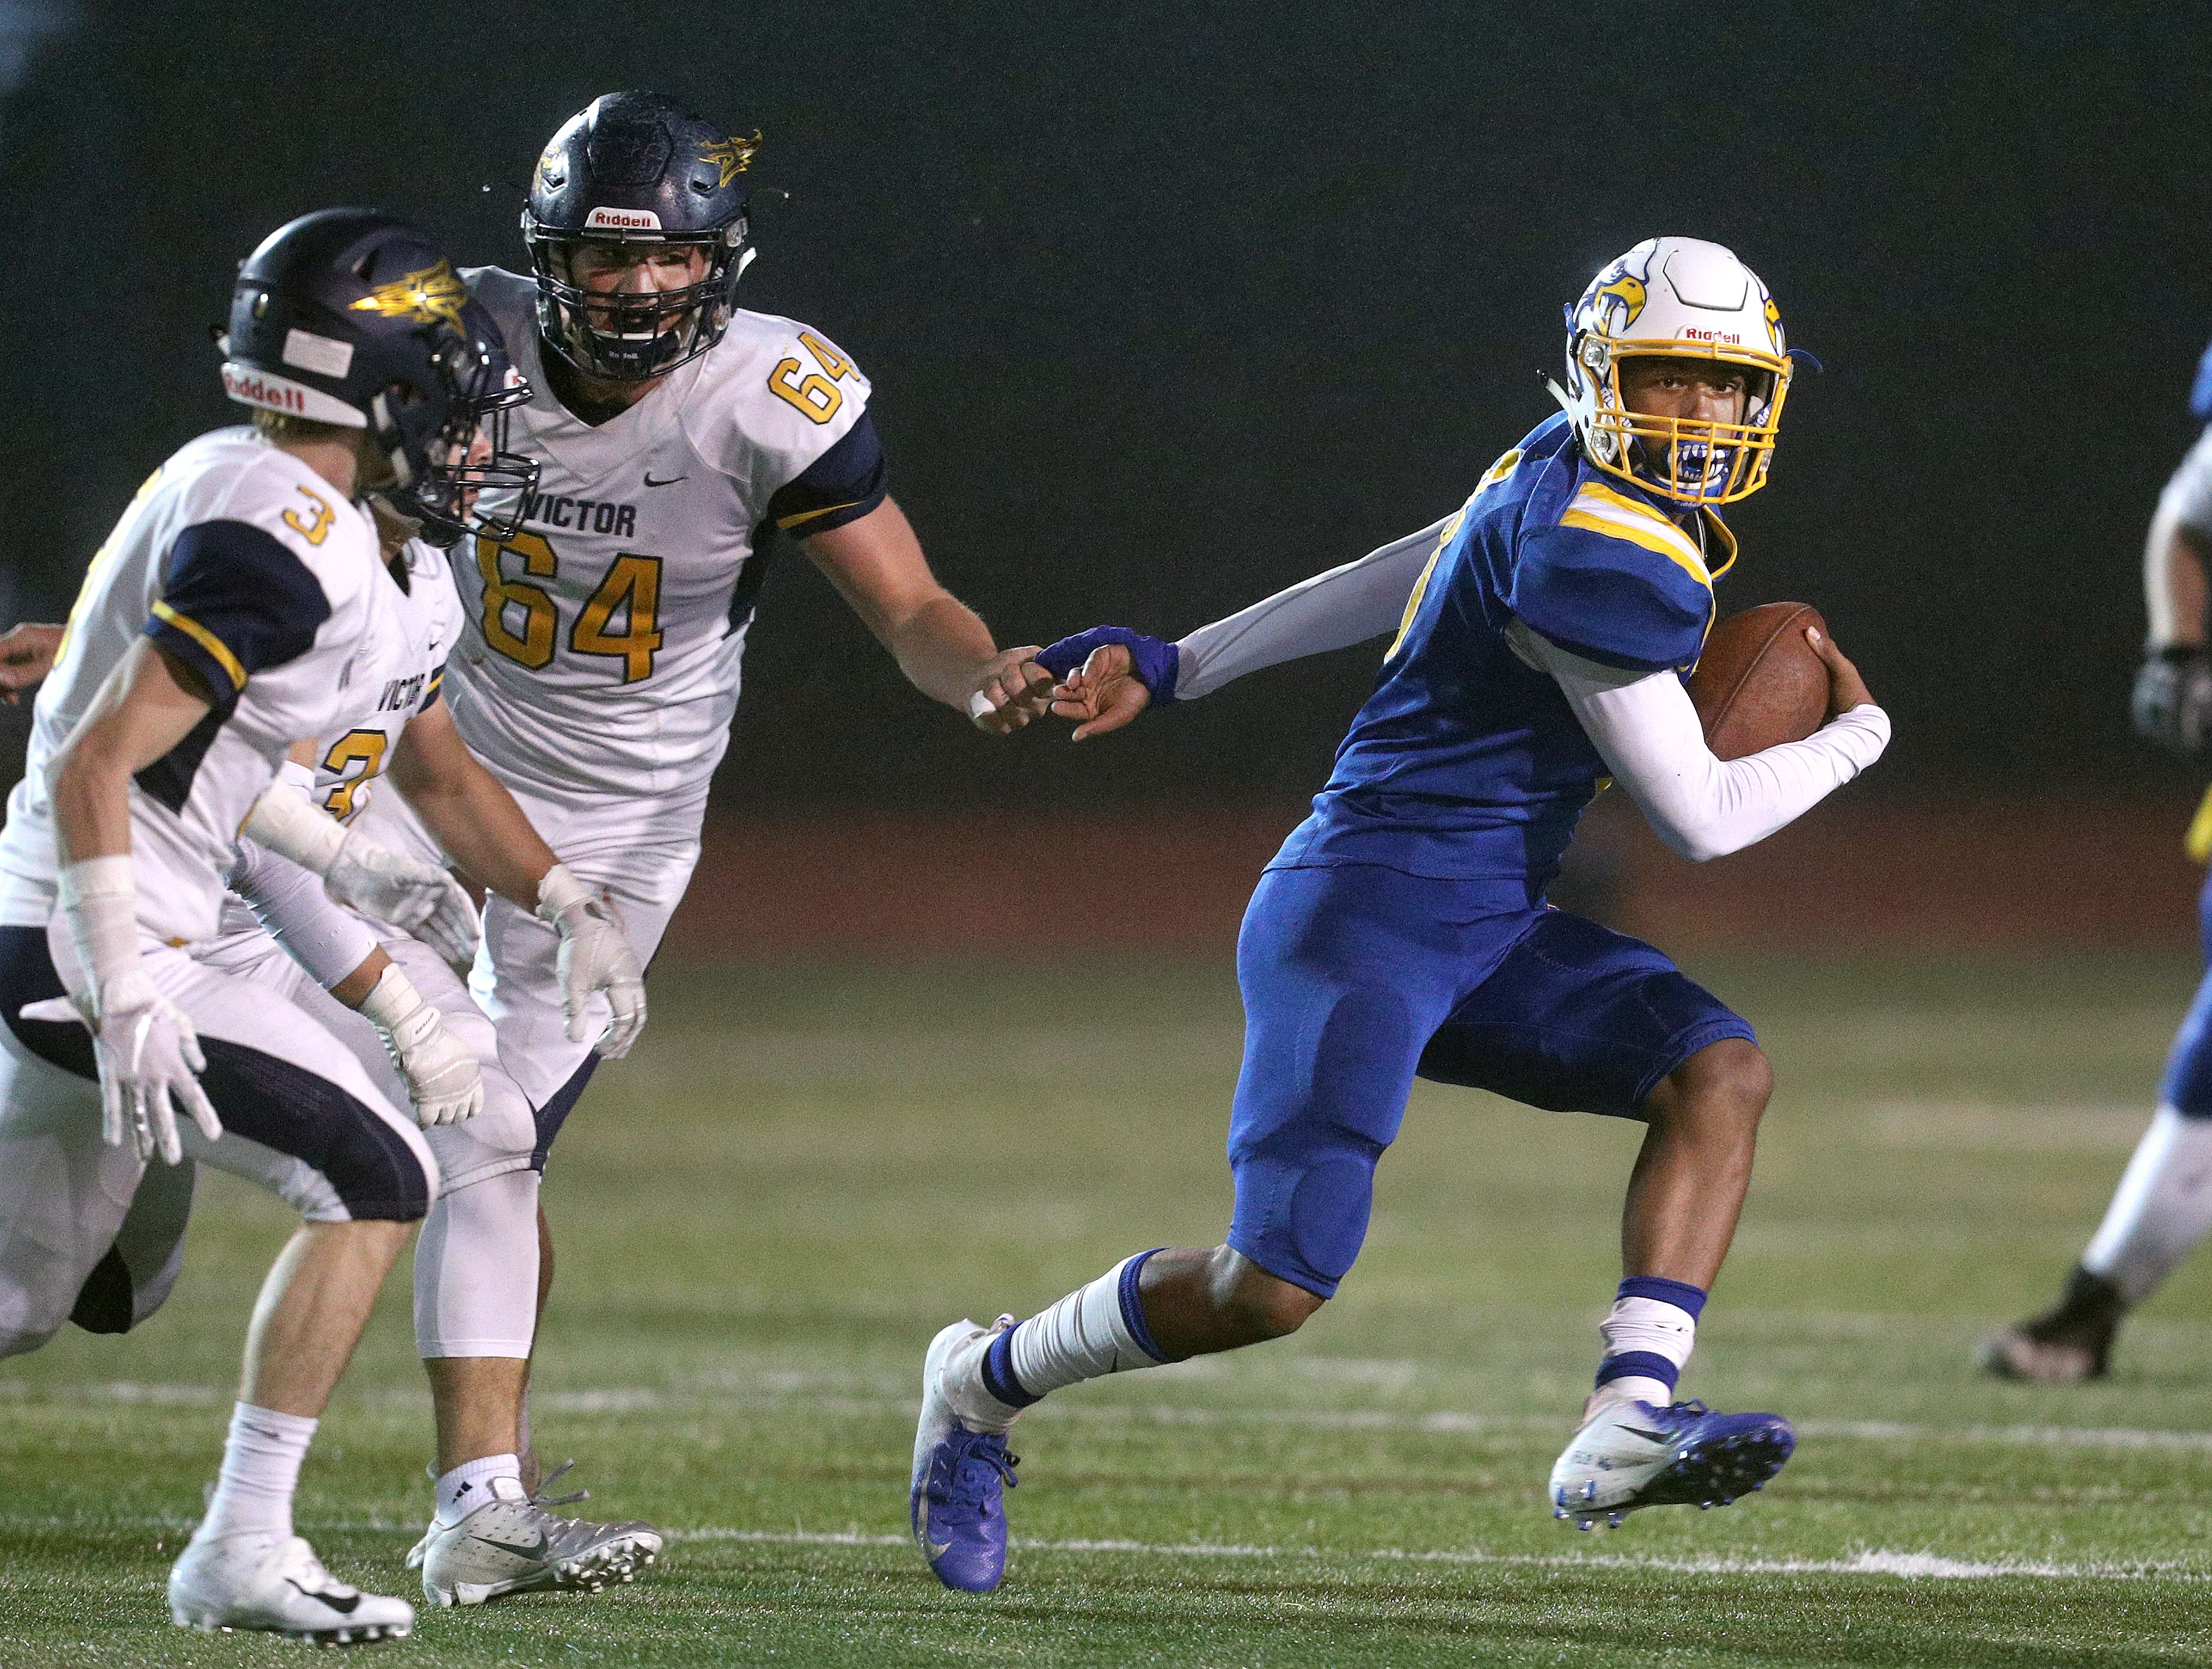 Irondequoit's Freddy June Jr. tries to slip a tackle by Victor's Sam Castiglia (64).